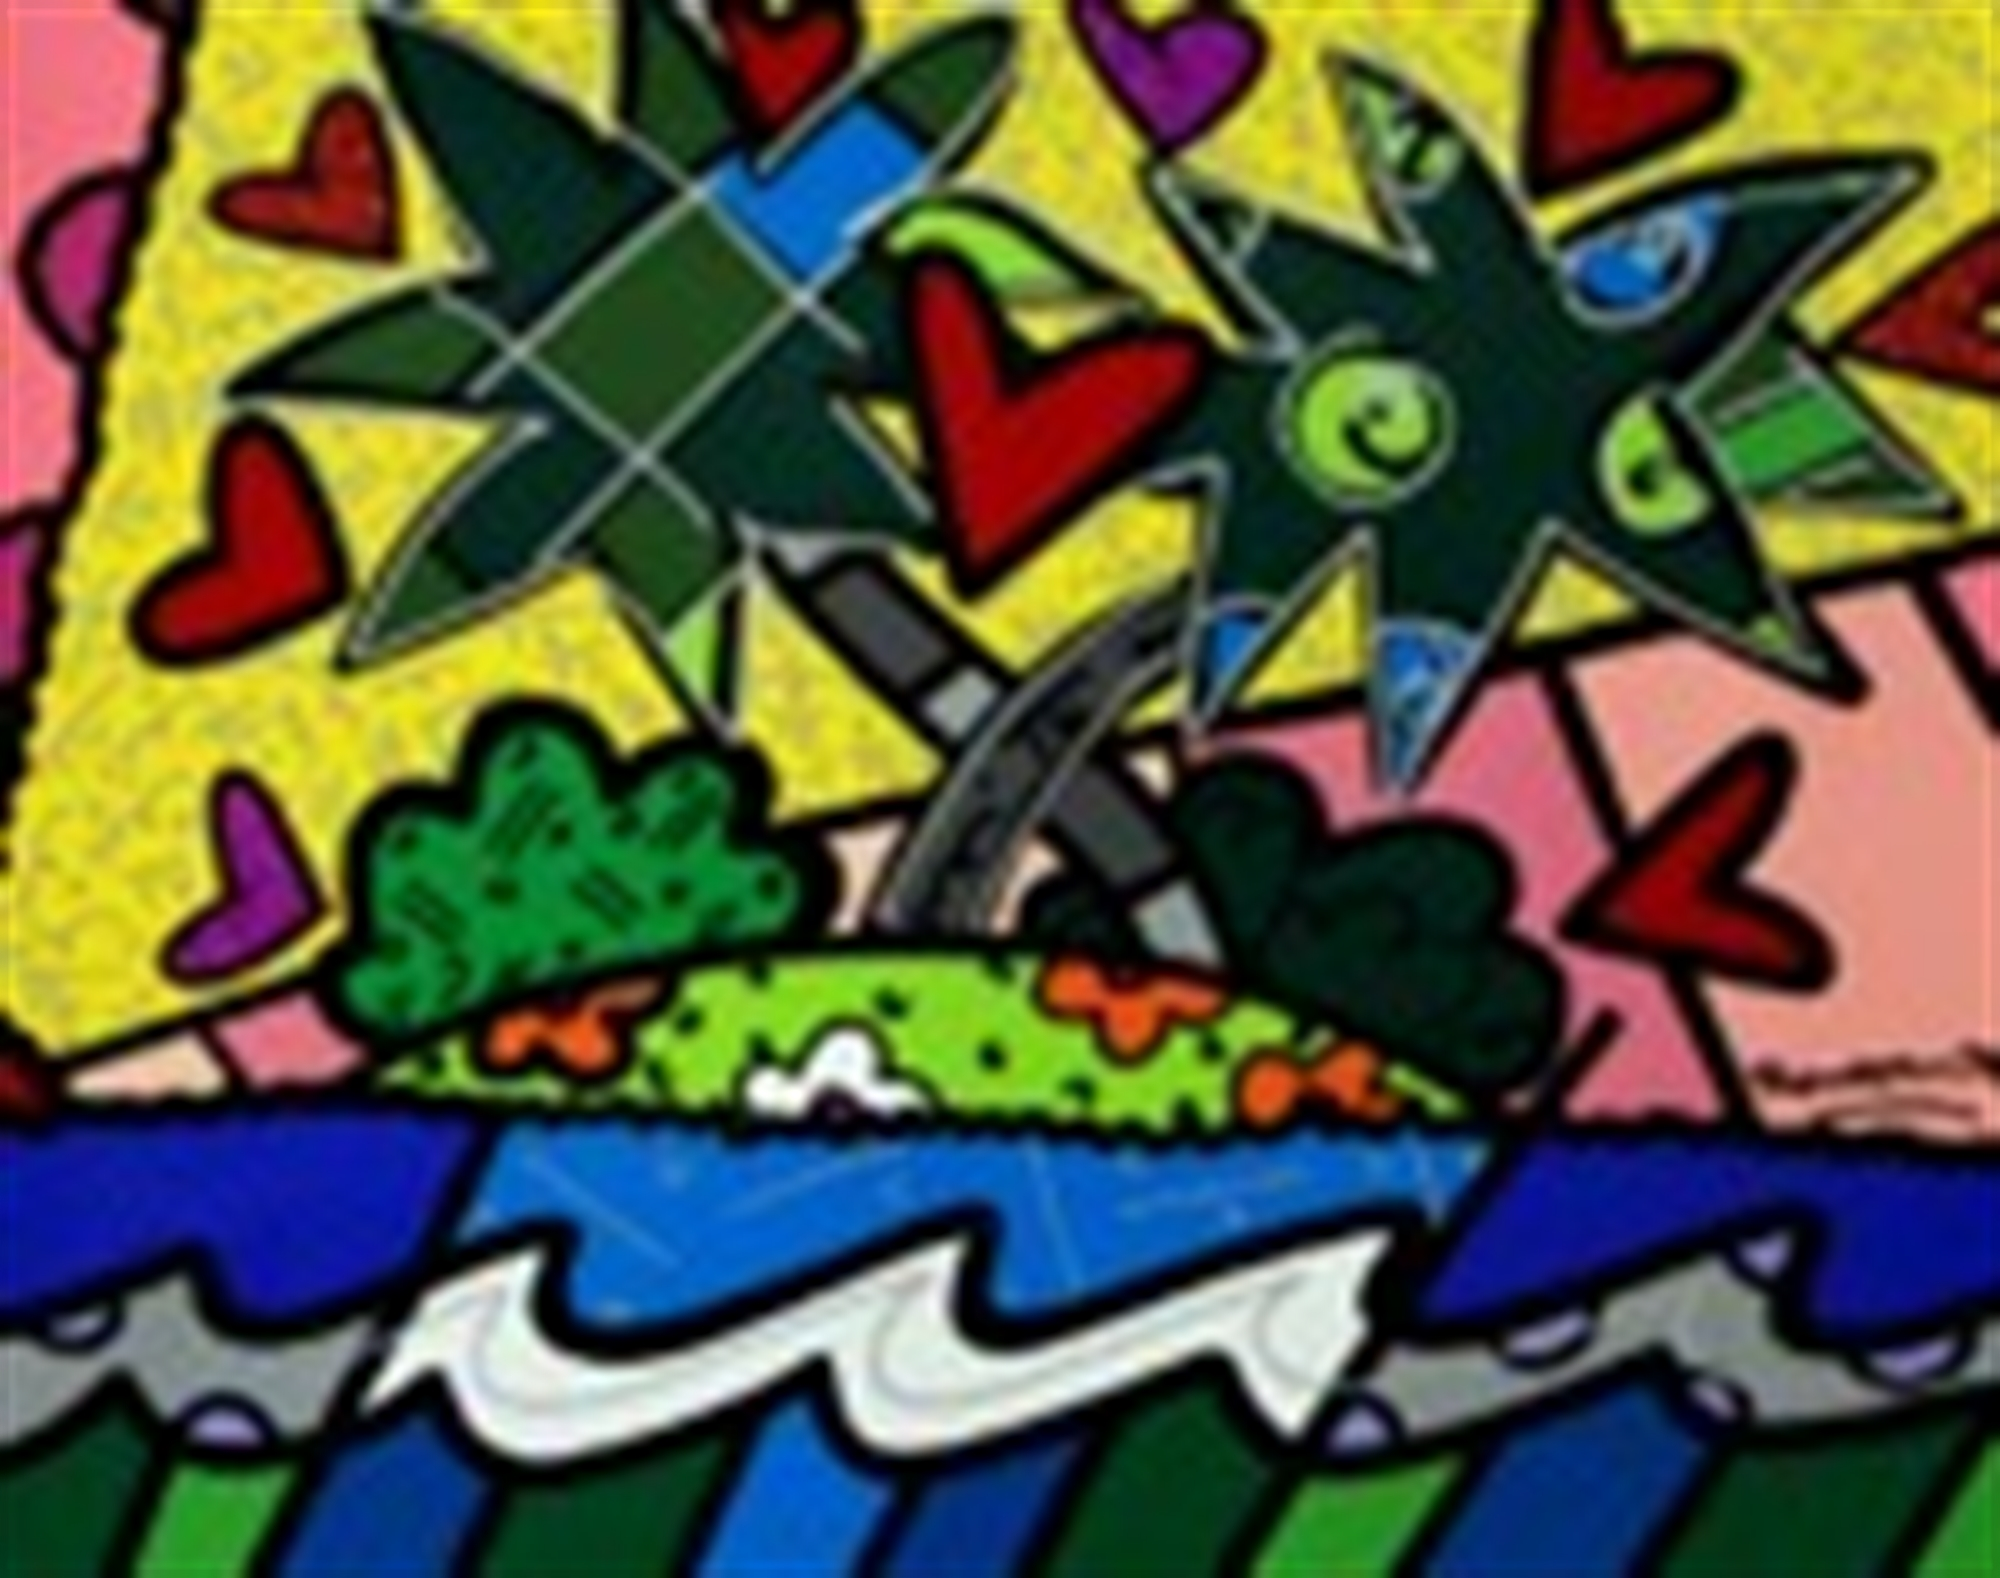 PARADISE by Romero Britto